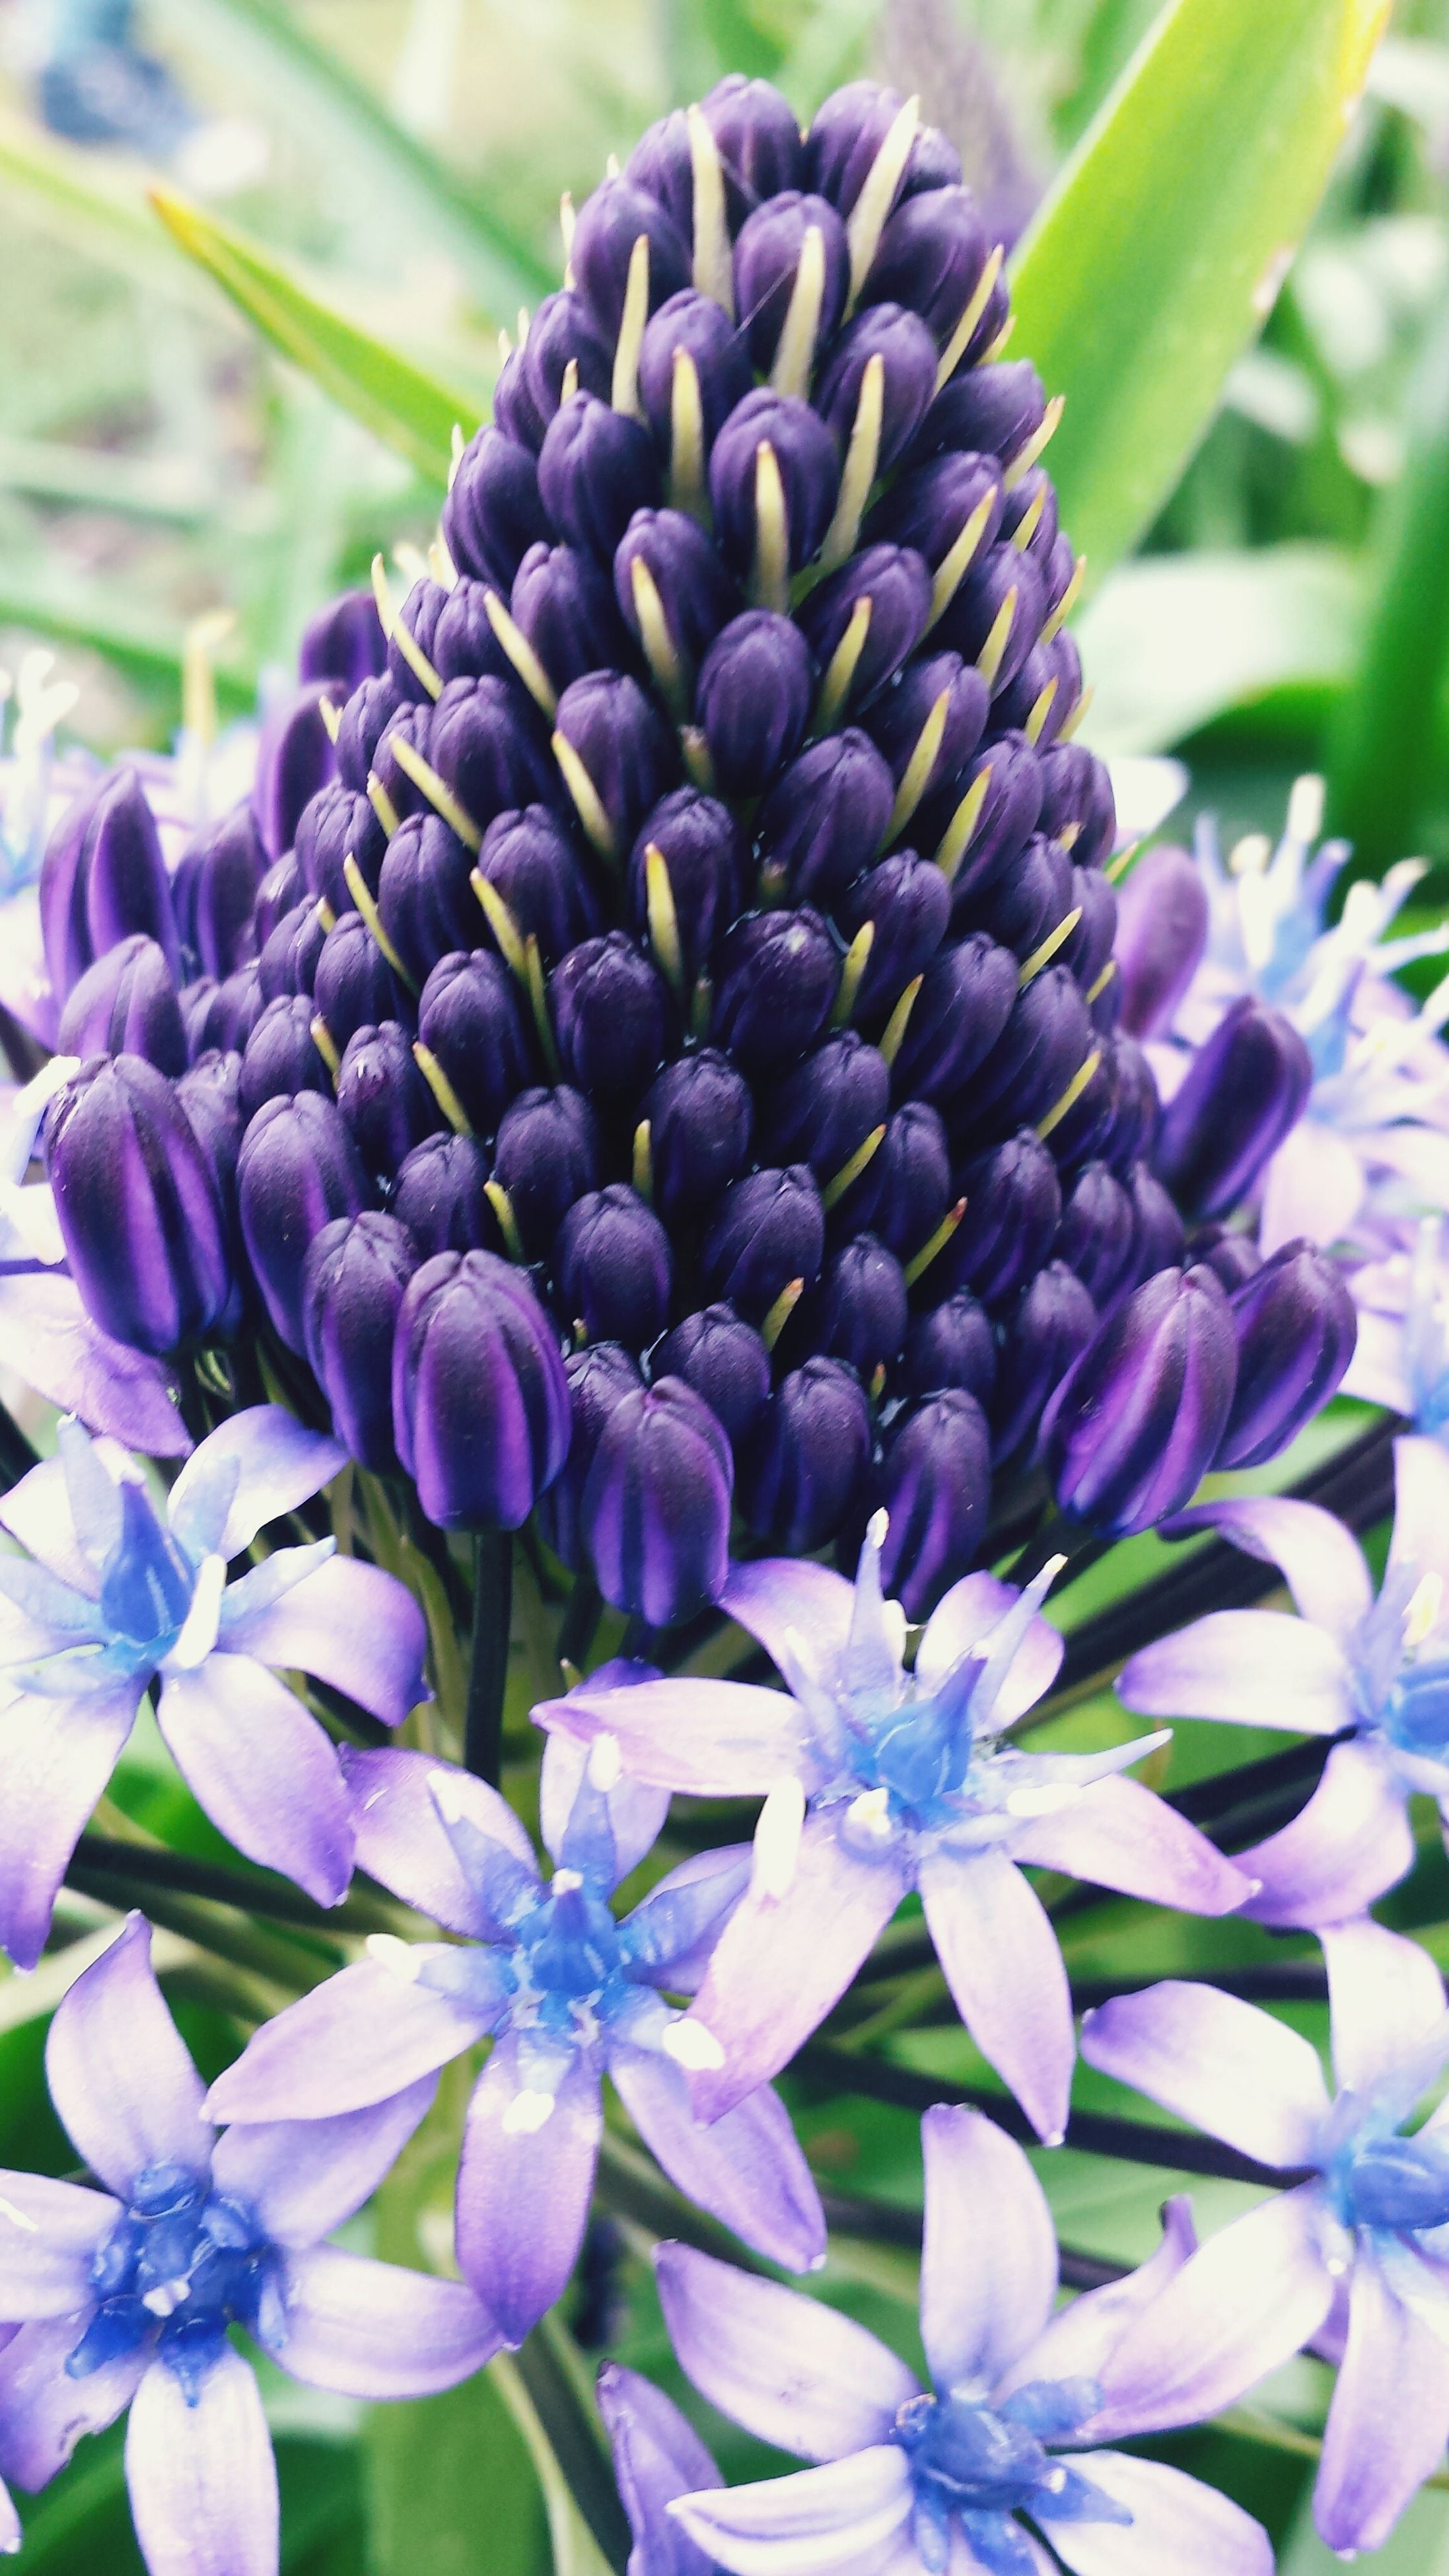 purple, flower, freshness, fragility, growth, close-up, blue, beauty in nature, petal, plant, focus on foreground, nature, flower head, blooming, no people, selective focus, outdoors, day, bud, in bloom